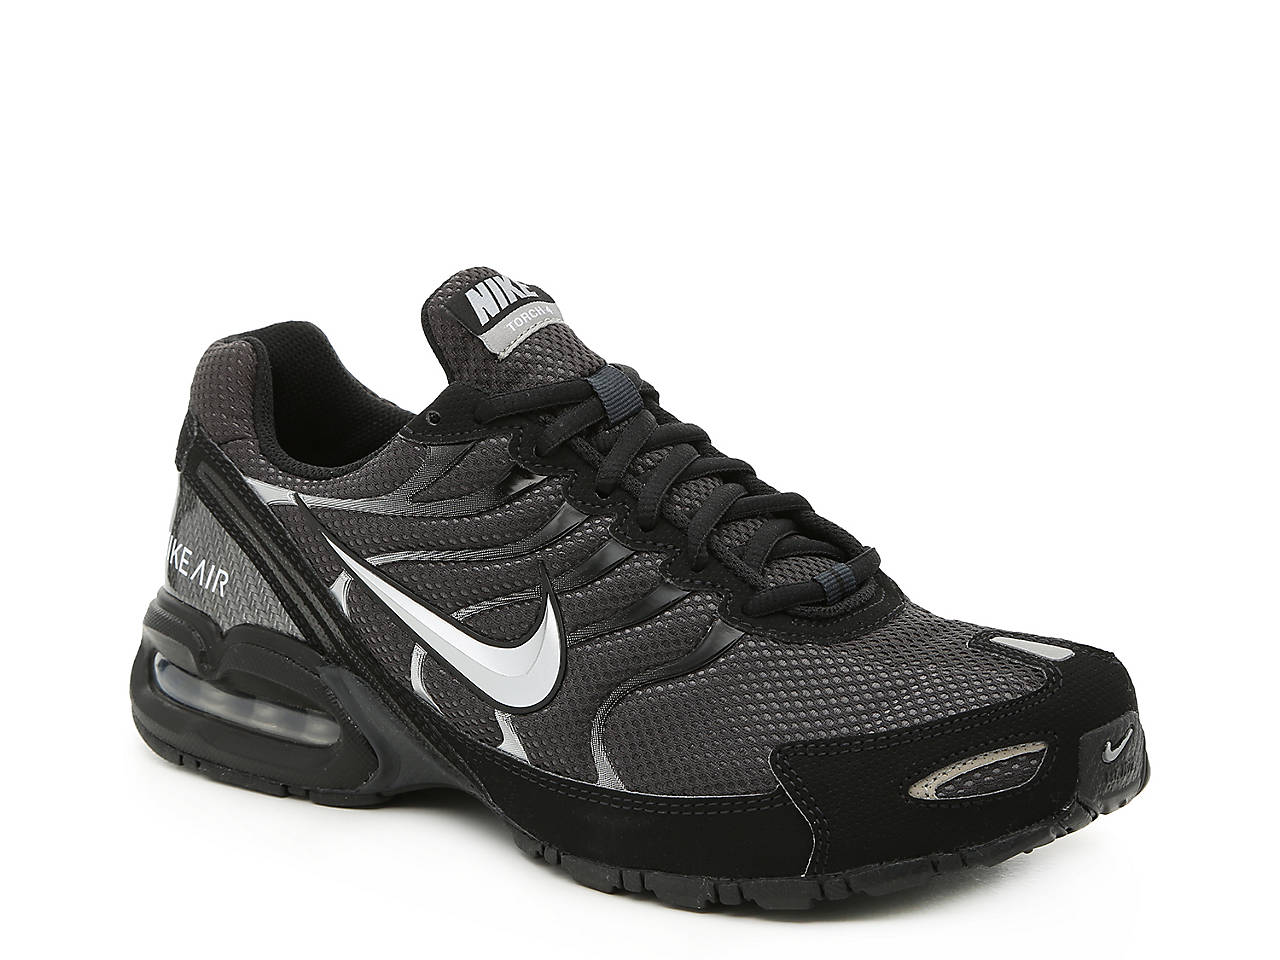 Air Max Torch 4 Running Shoe Men's